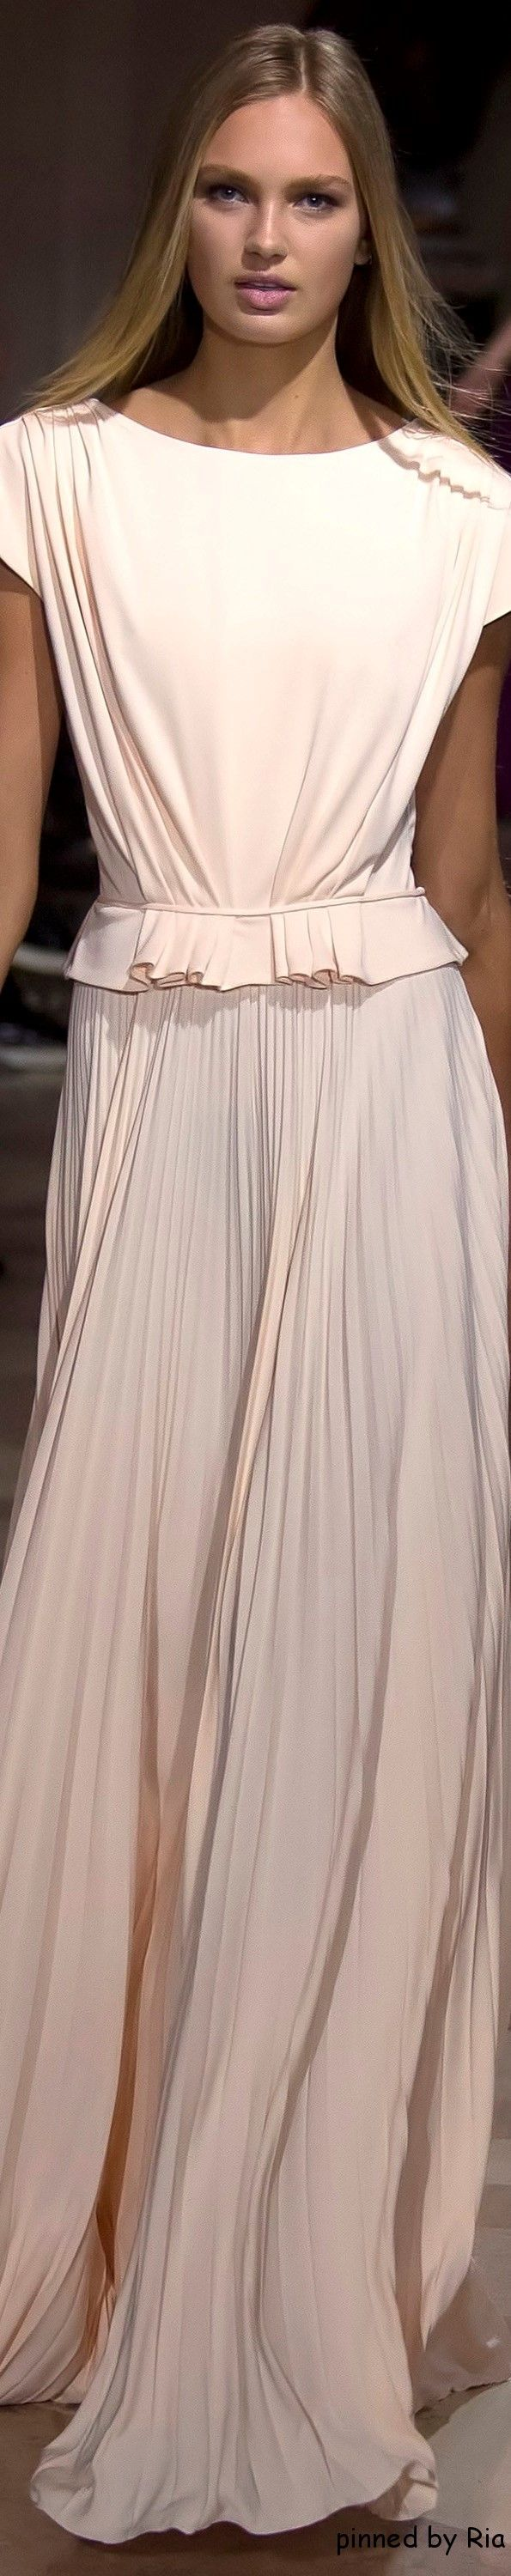 Carolina Herrera Fall 2016 RTW l Ria women fashion outfit clothing style apparel @roressclothes closet ideas